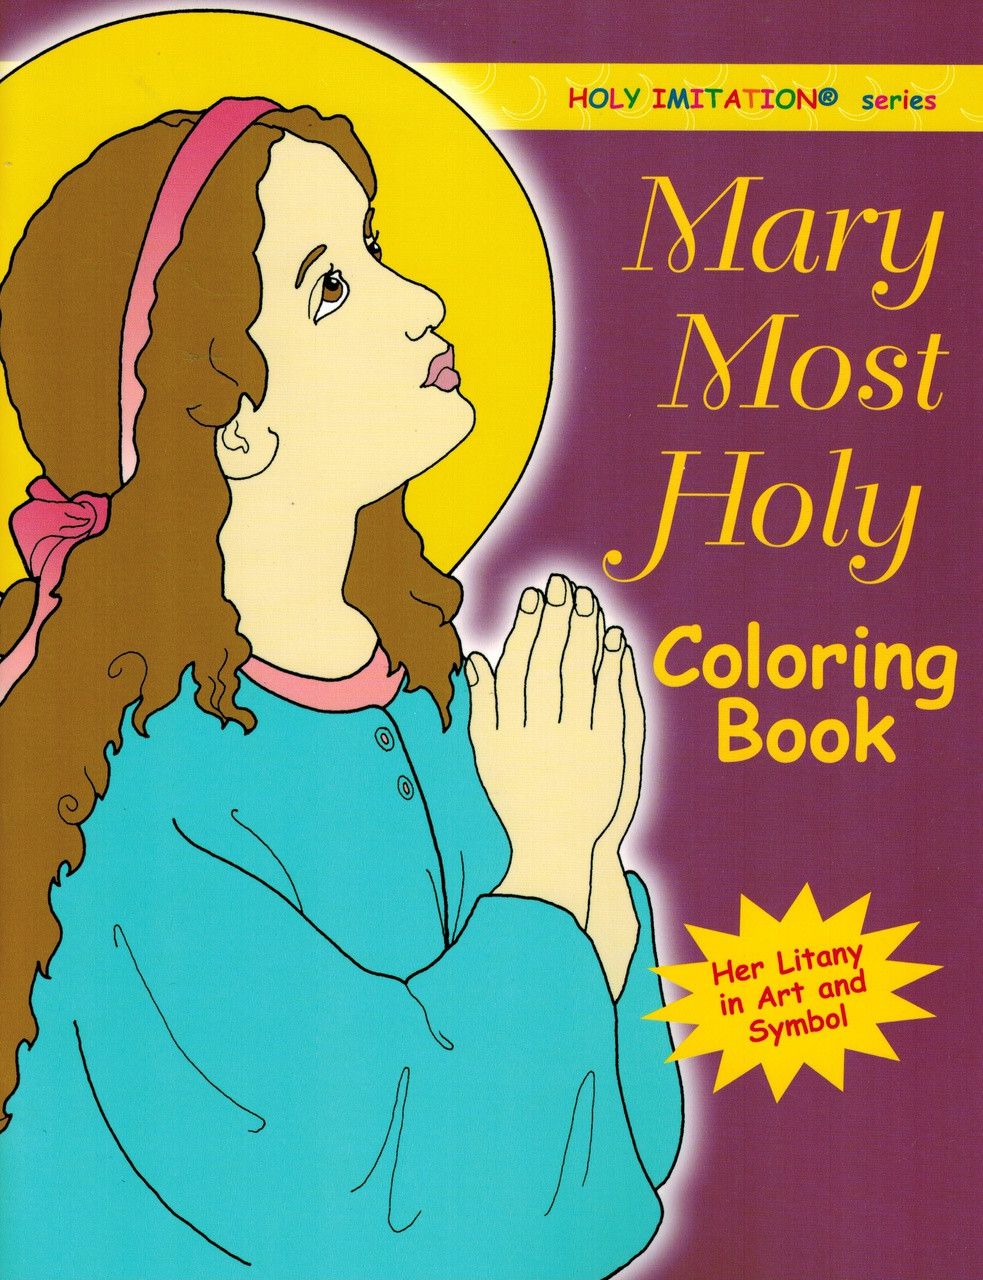 Blessed Virgin Mary Coloring Book